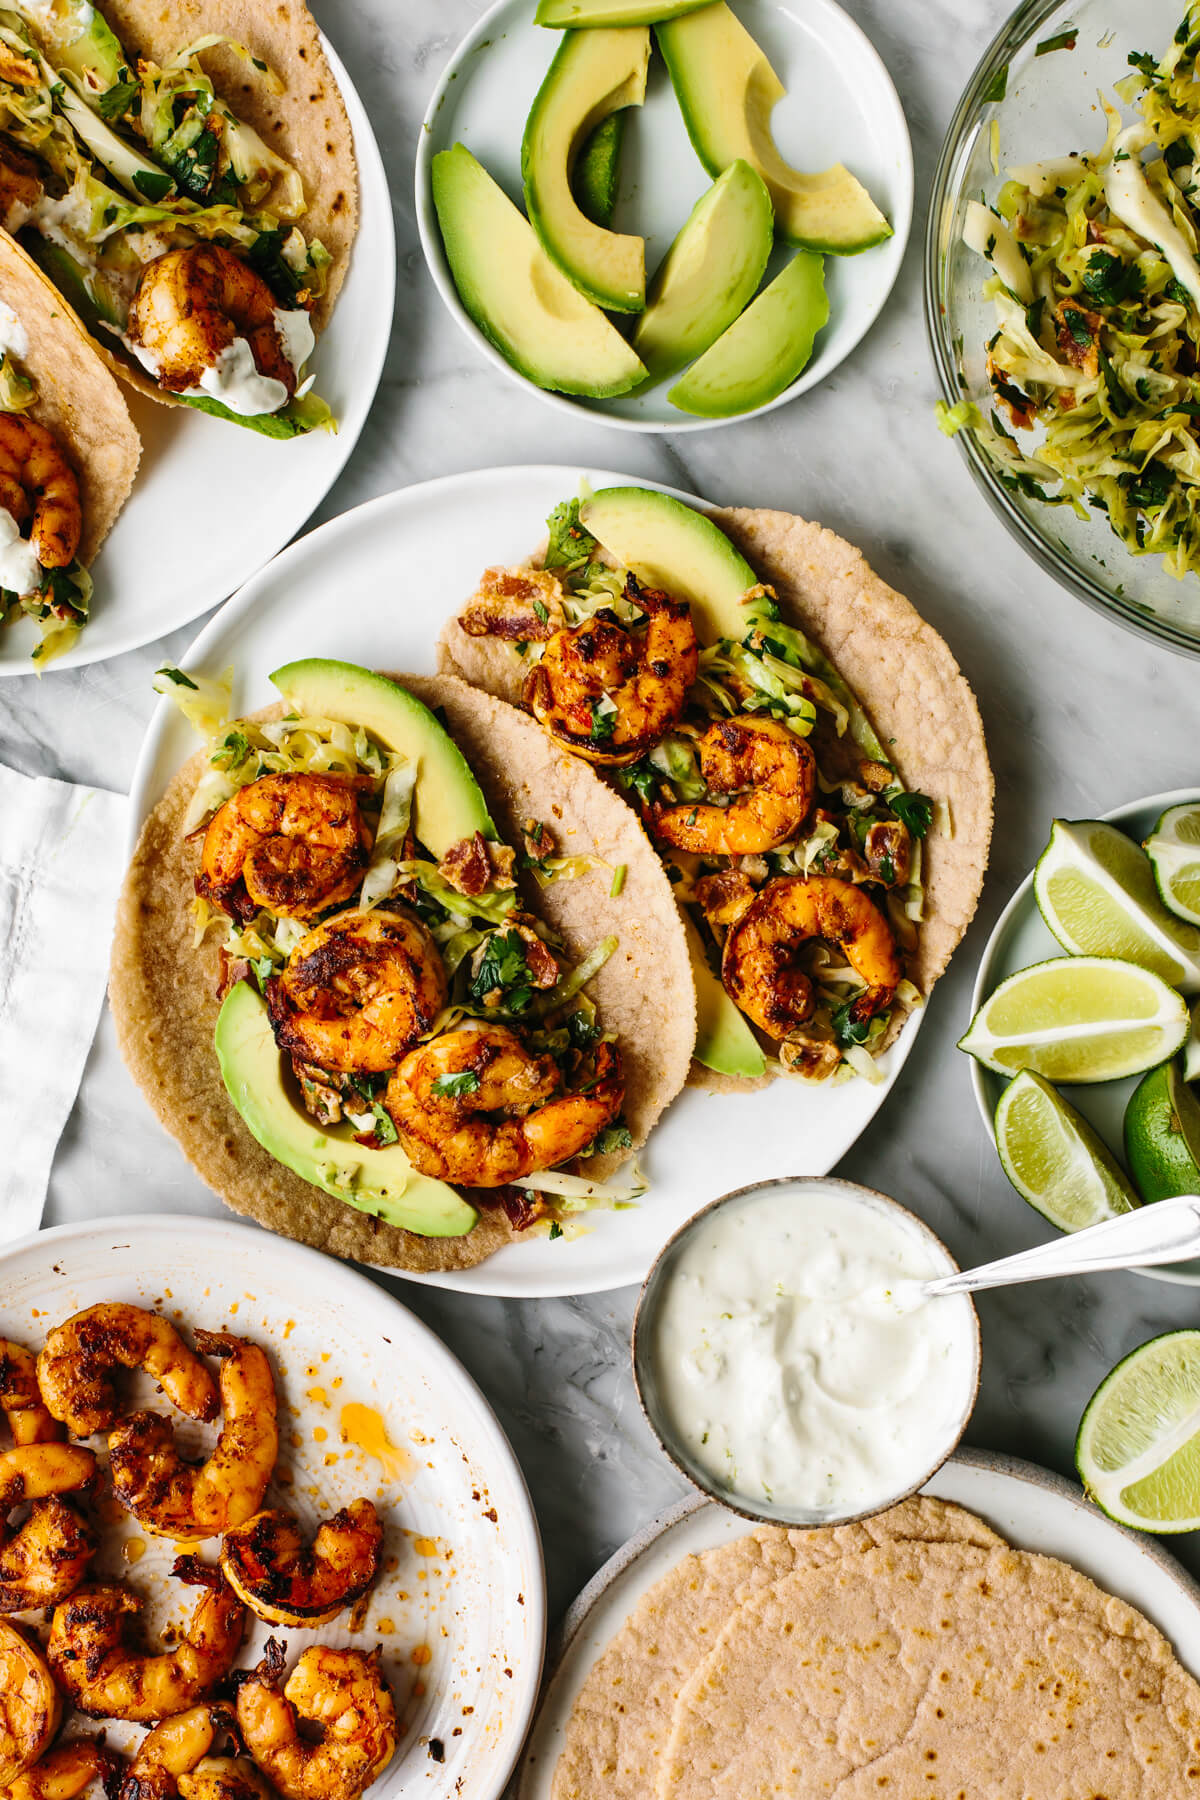 Shrimp tacos in the center of a table next to tortillas, avocado, and lime crema.